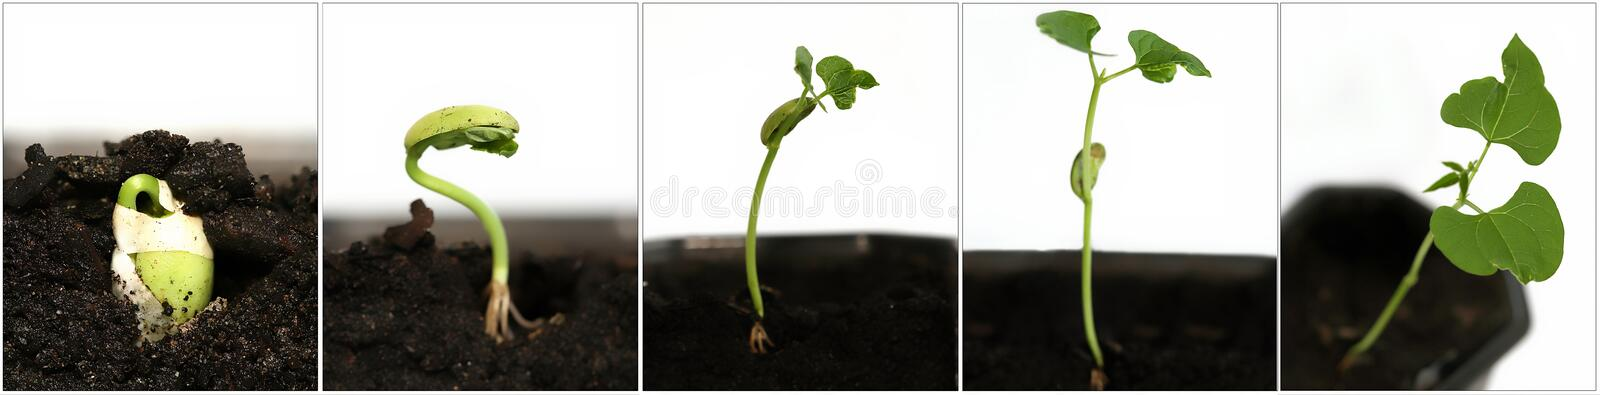 Growing seed royalty free stock photos